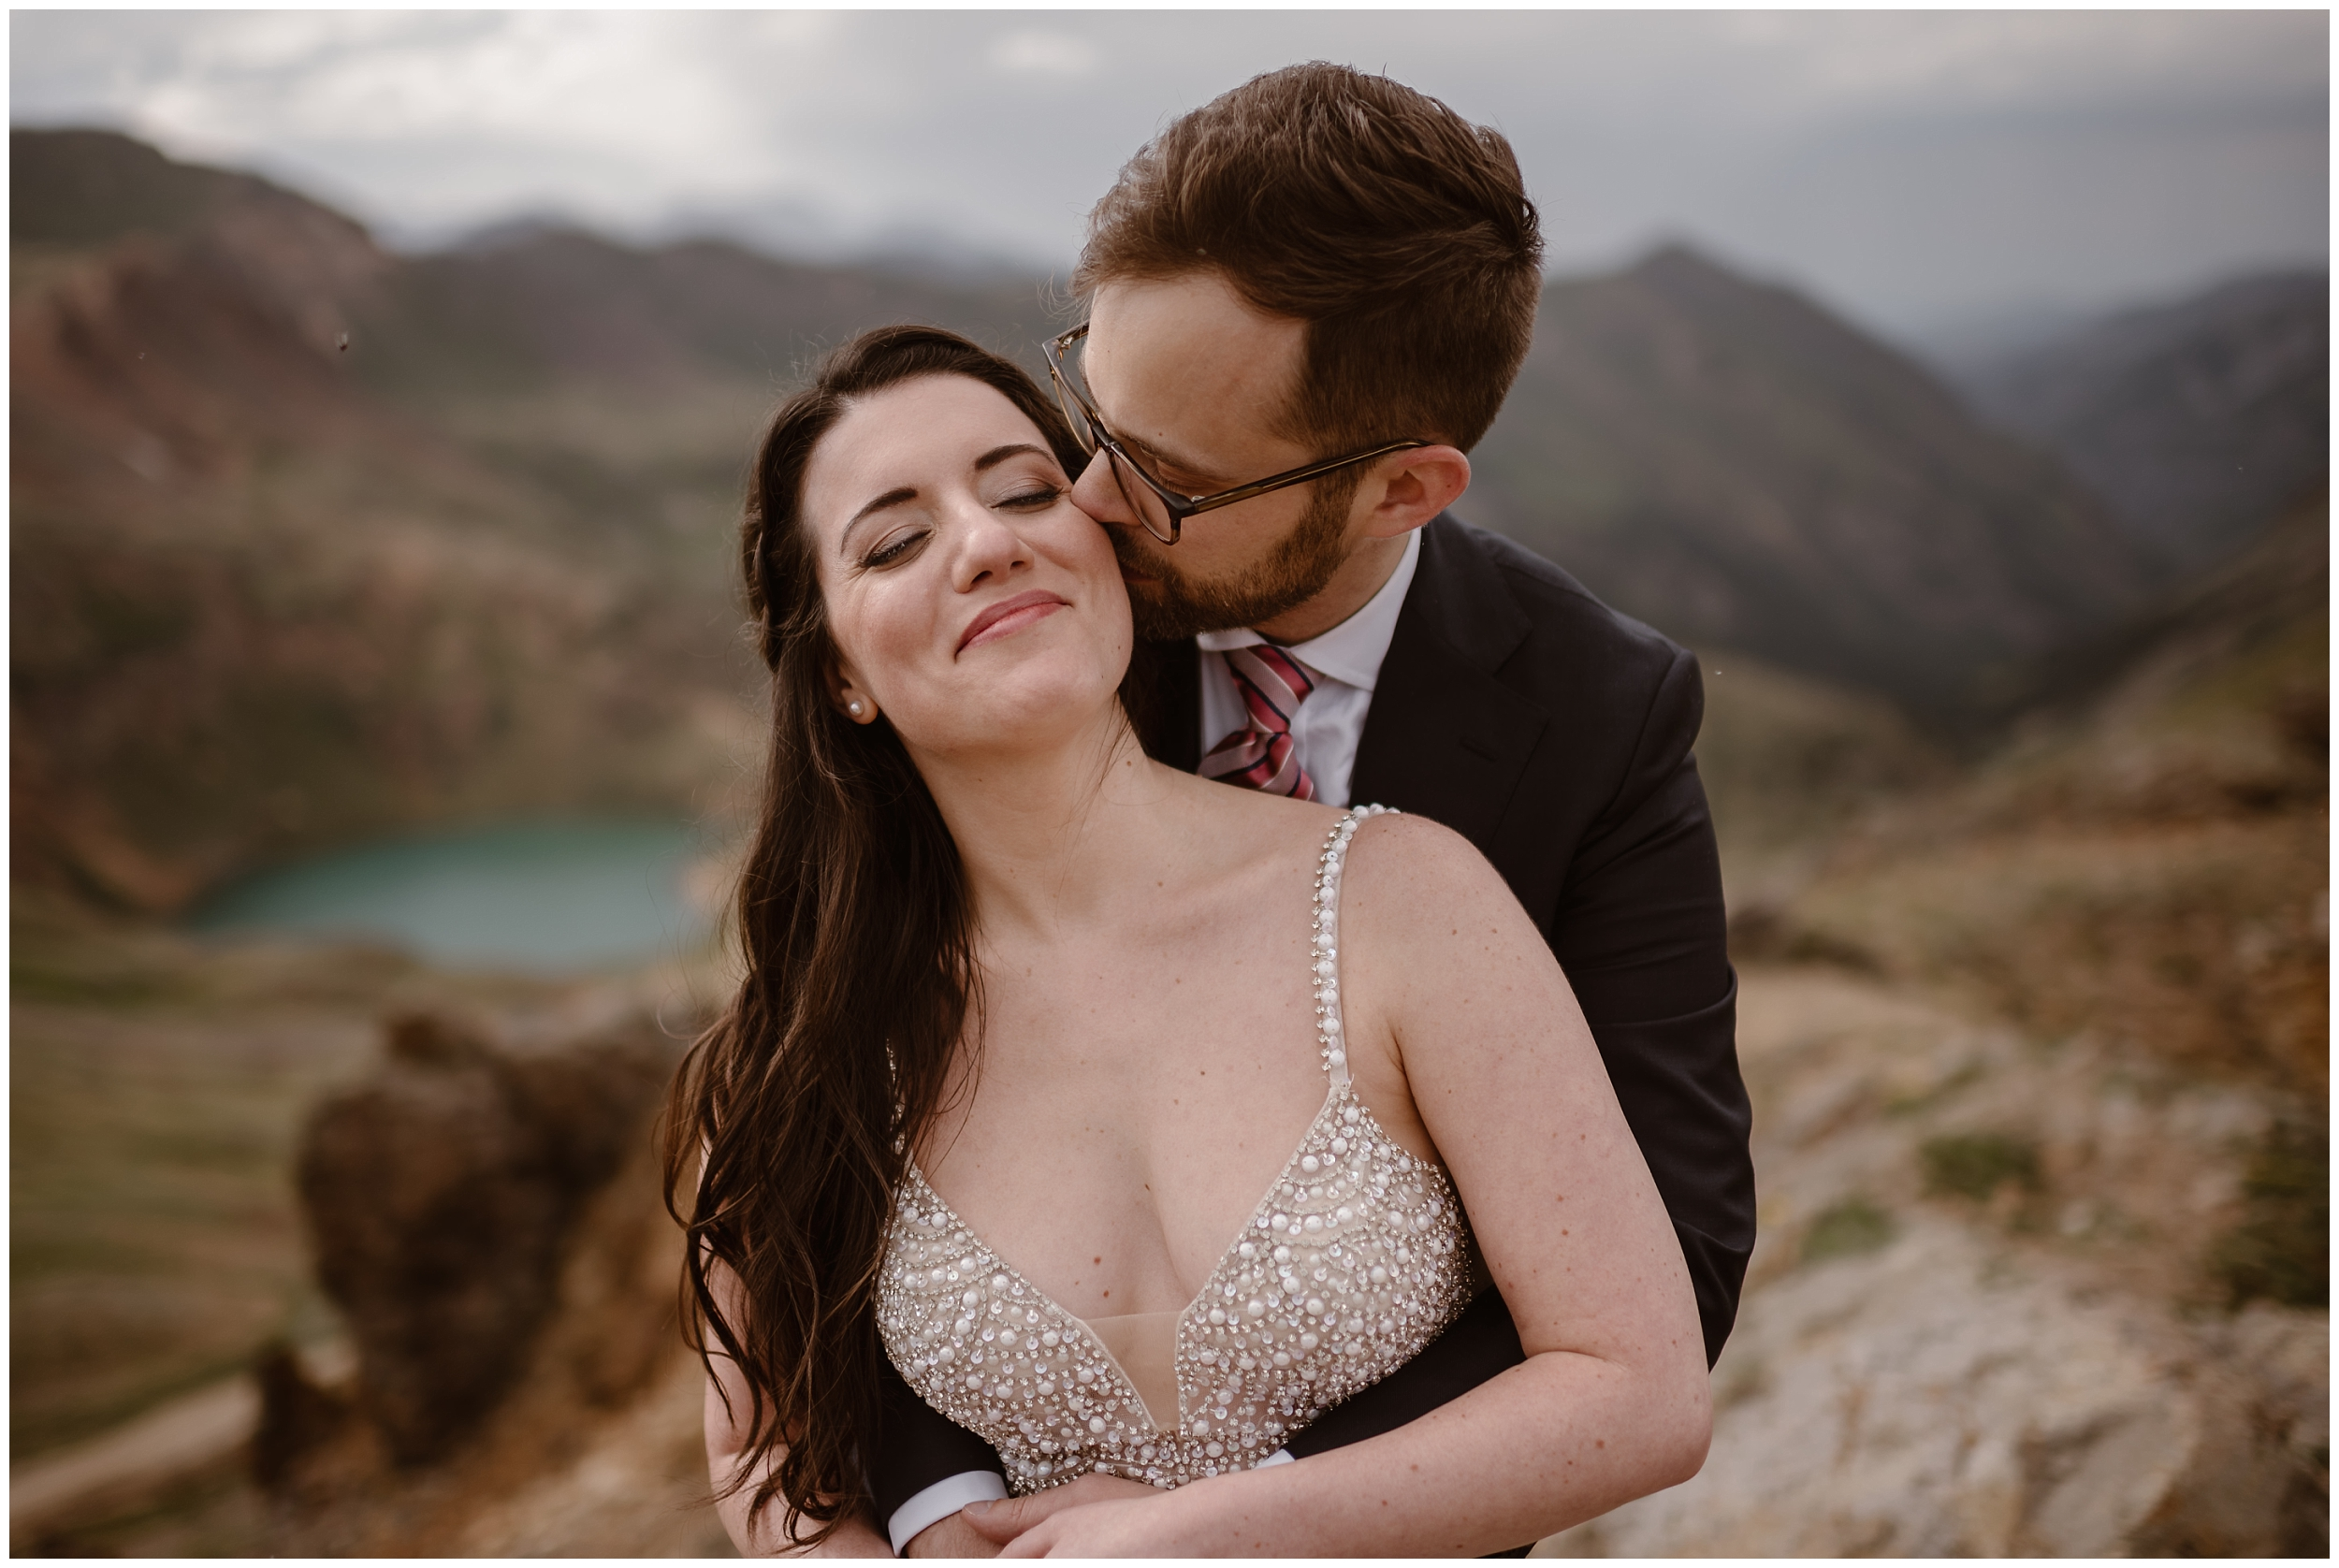 Logan, the groom, holds his bride, Katie by wrapping his arms around her. Katie, shown from the bodice of her pearl wedding dress up, shuts her eyes and leans into her groom's kiss, smiling an enormous smile. The two stand at the forefront of the image, but in the background, a striking, turquoise alpine lake can be seen in the distance at the bottom of the basin.